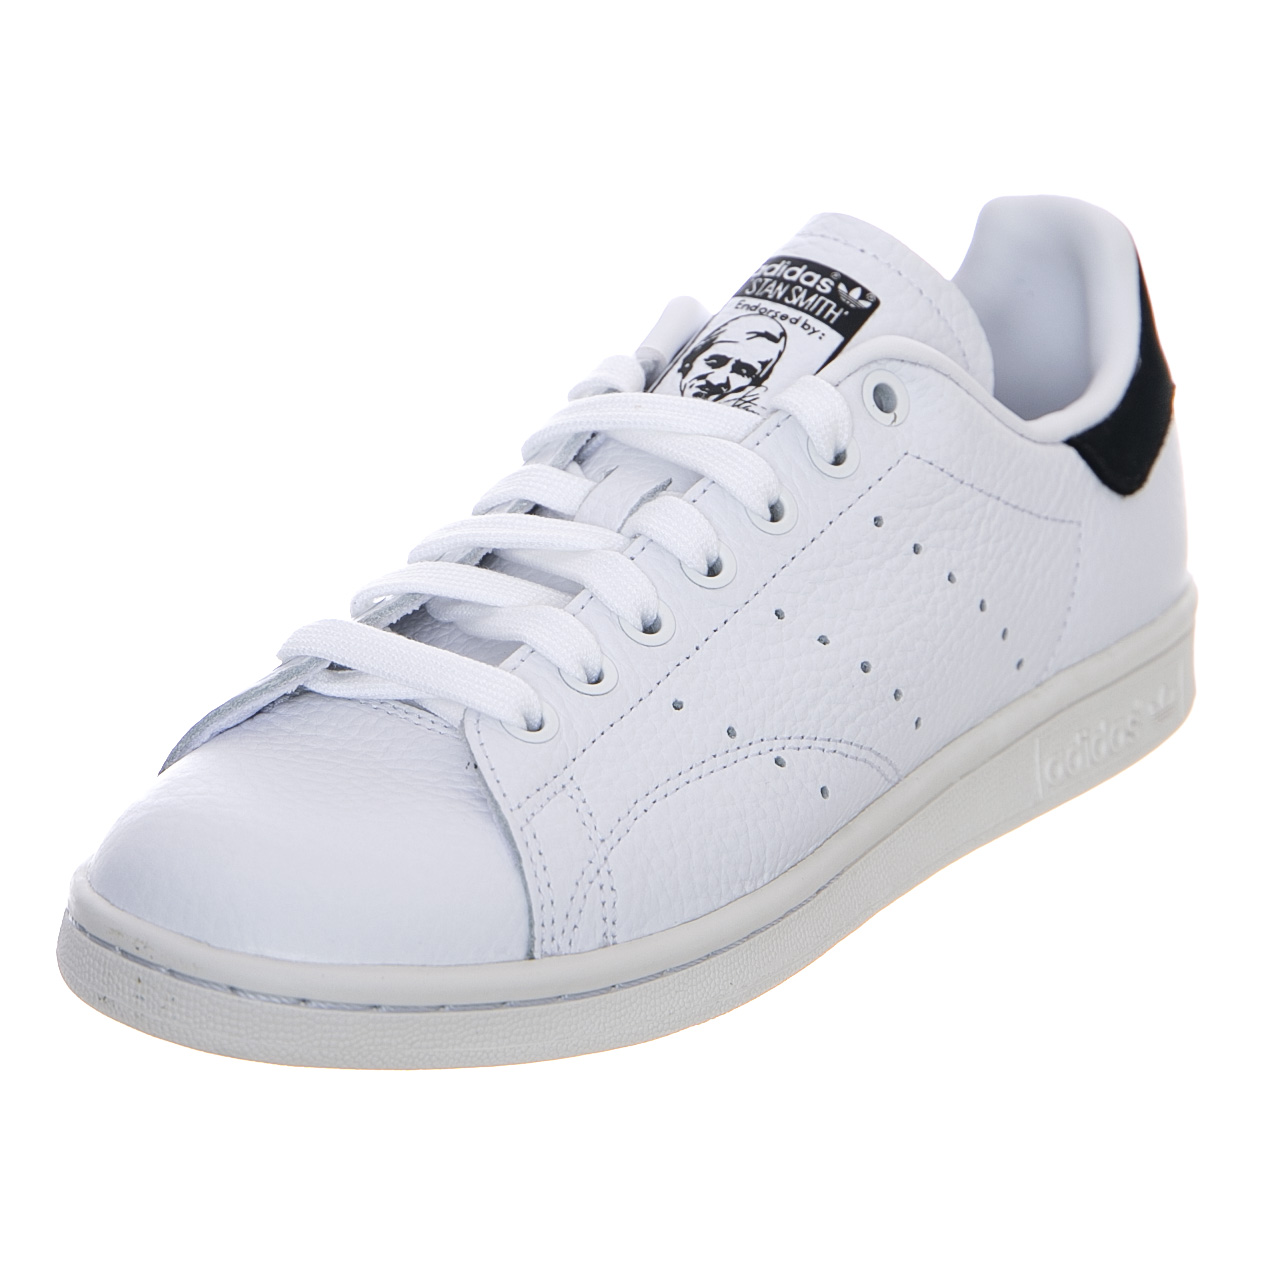 sports shoes 647d1 42aae Details about Adidas Stan Smith White/Core Black - Sneakers Low Man/Woman  White